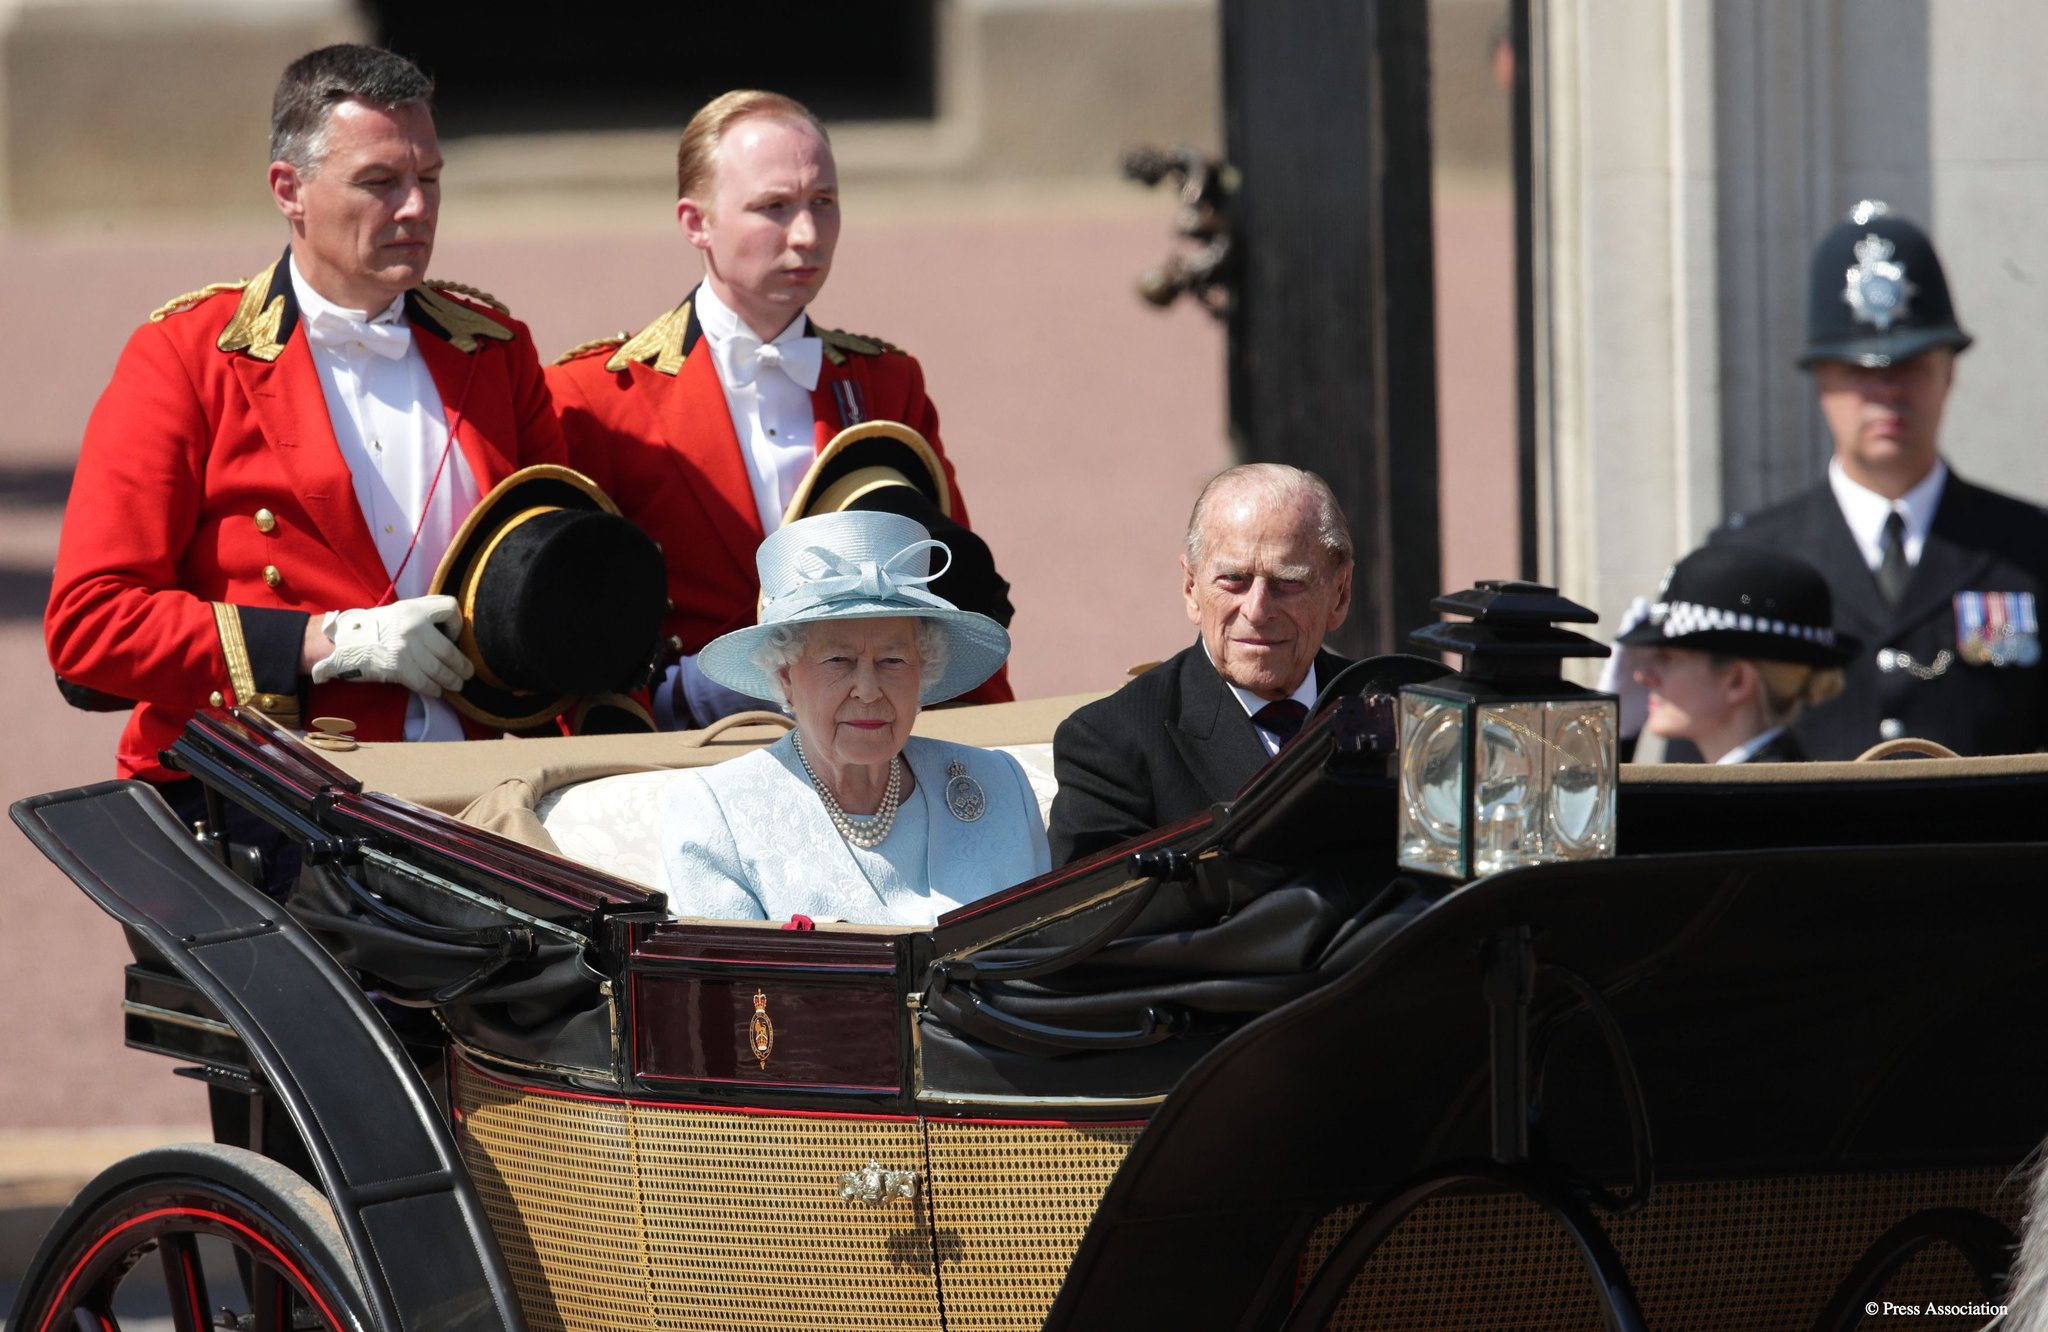 Thumbnail for Queen Elizabeth II celebrates 'official' birthday with Trooping the Color parade